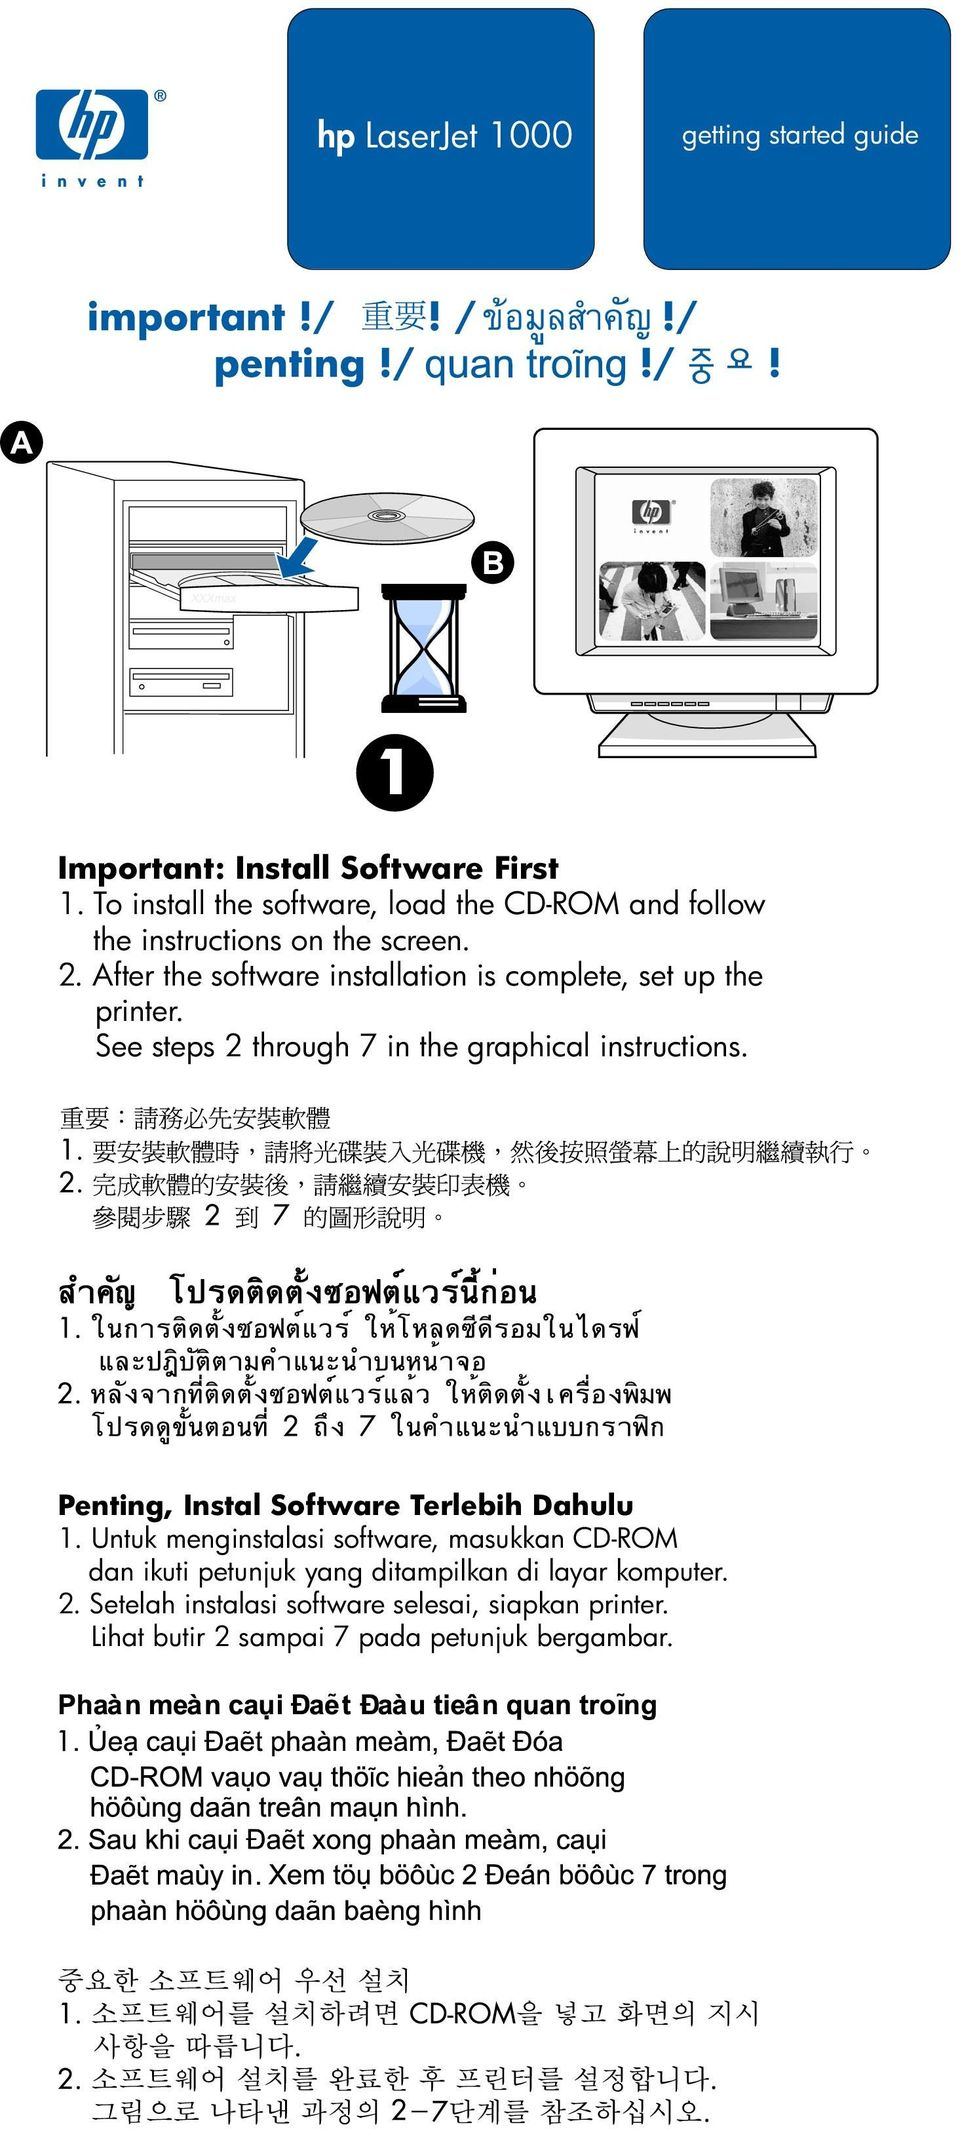 After the software installation is complete, set up the printer. See steps 2 through 7 in the graphical instructions.